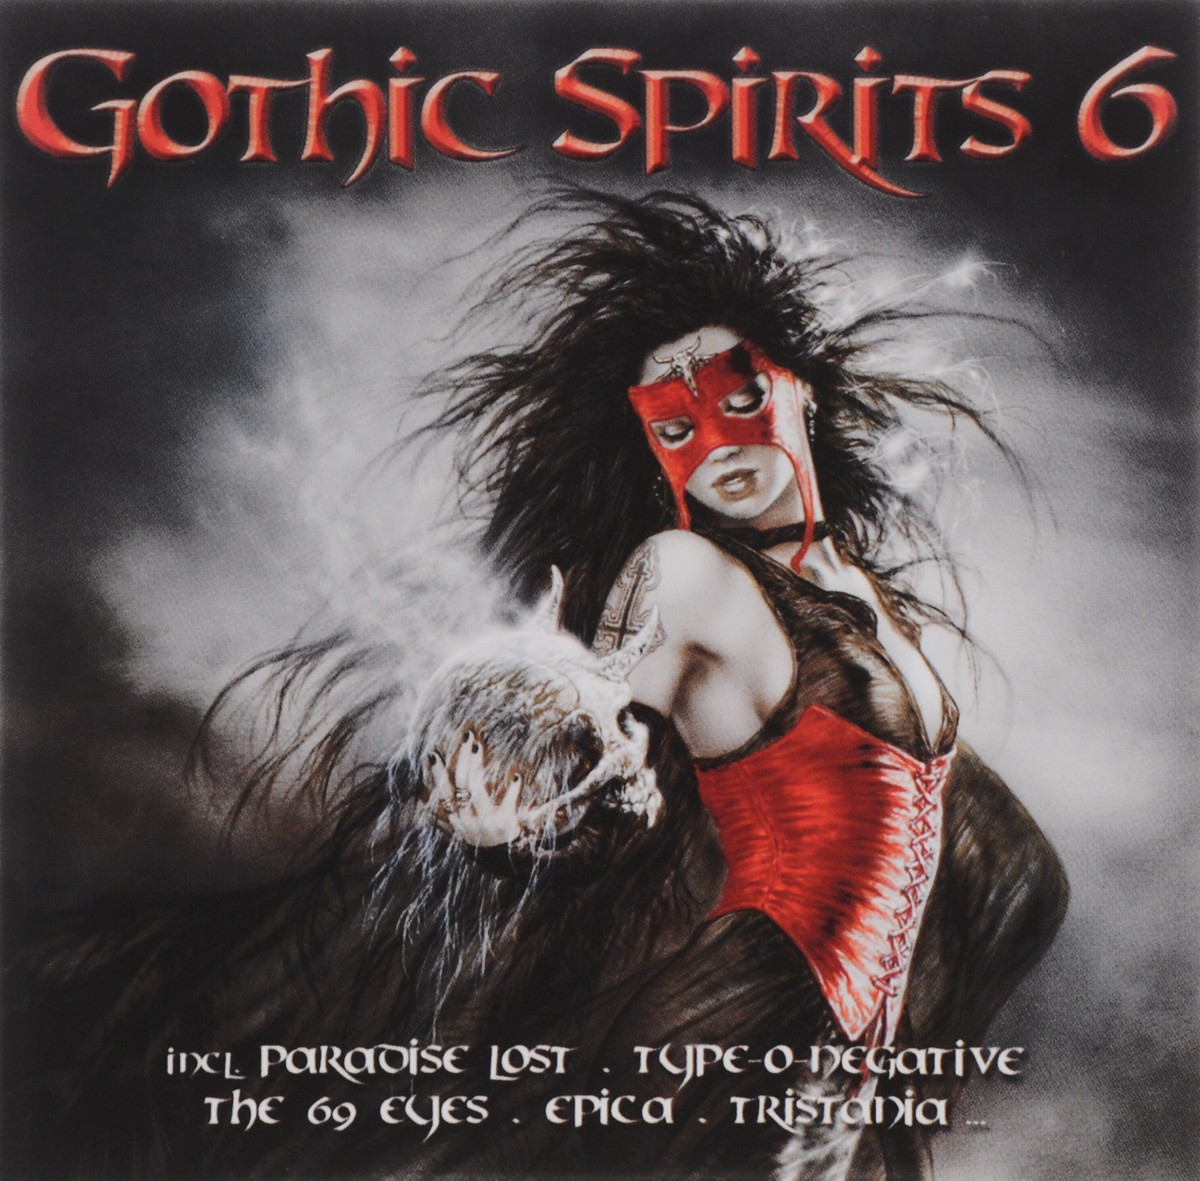 Paradise Lost,Amorphis,Samael,Eyes Of Eden,Fall Of The Leave,Xandria,Epica,Helalyn Flowers,Jesus On Extasy,Type O Negative,The 69 Eyes,Scream Silence,The Mission,Krypteria,Visions Of Atlantis,Sirenia,Passionworks,Imperia,The Big Boy,Mono Inc. Gothic Spirits 6 (2 CD) eden on the charles – the making of boston